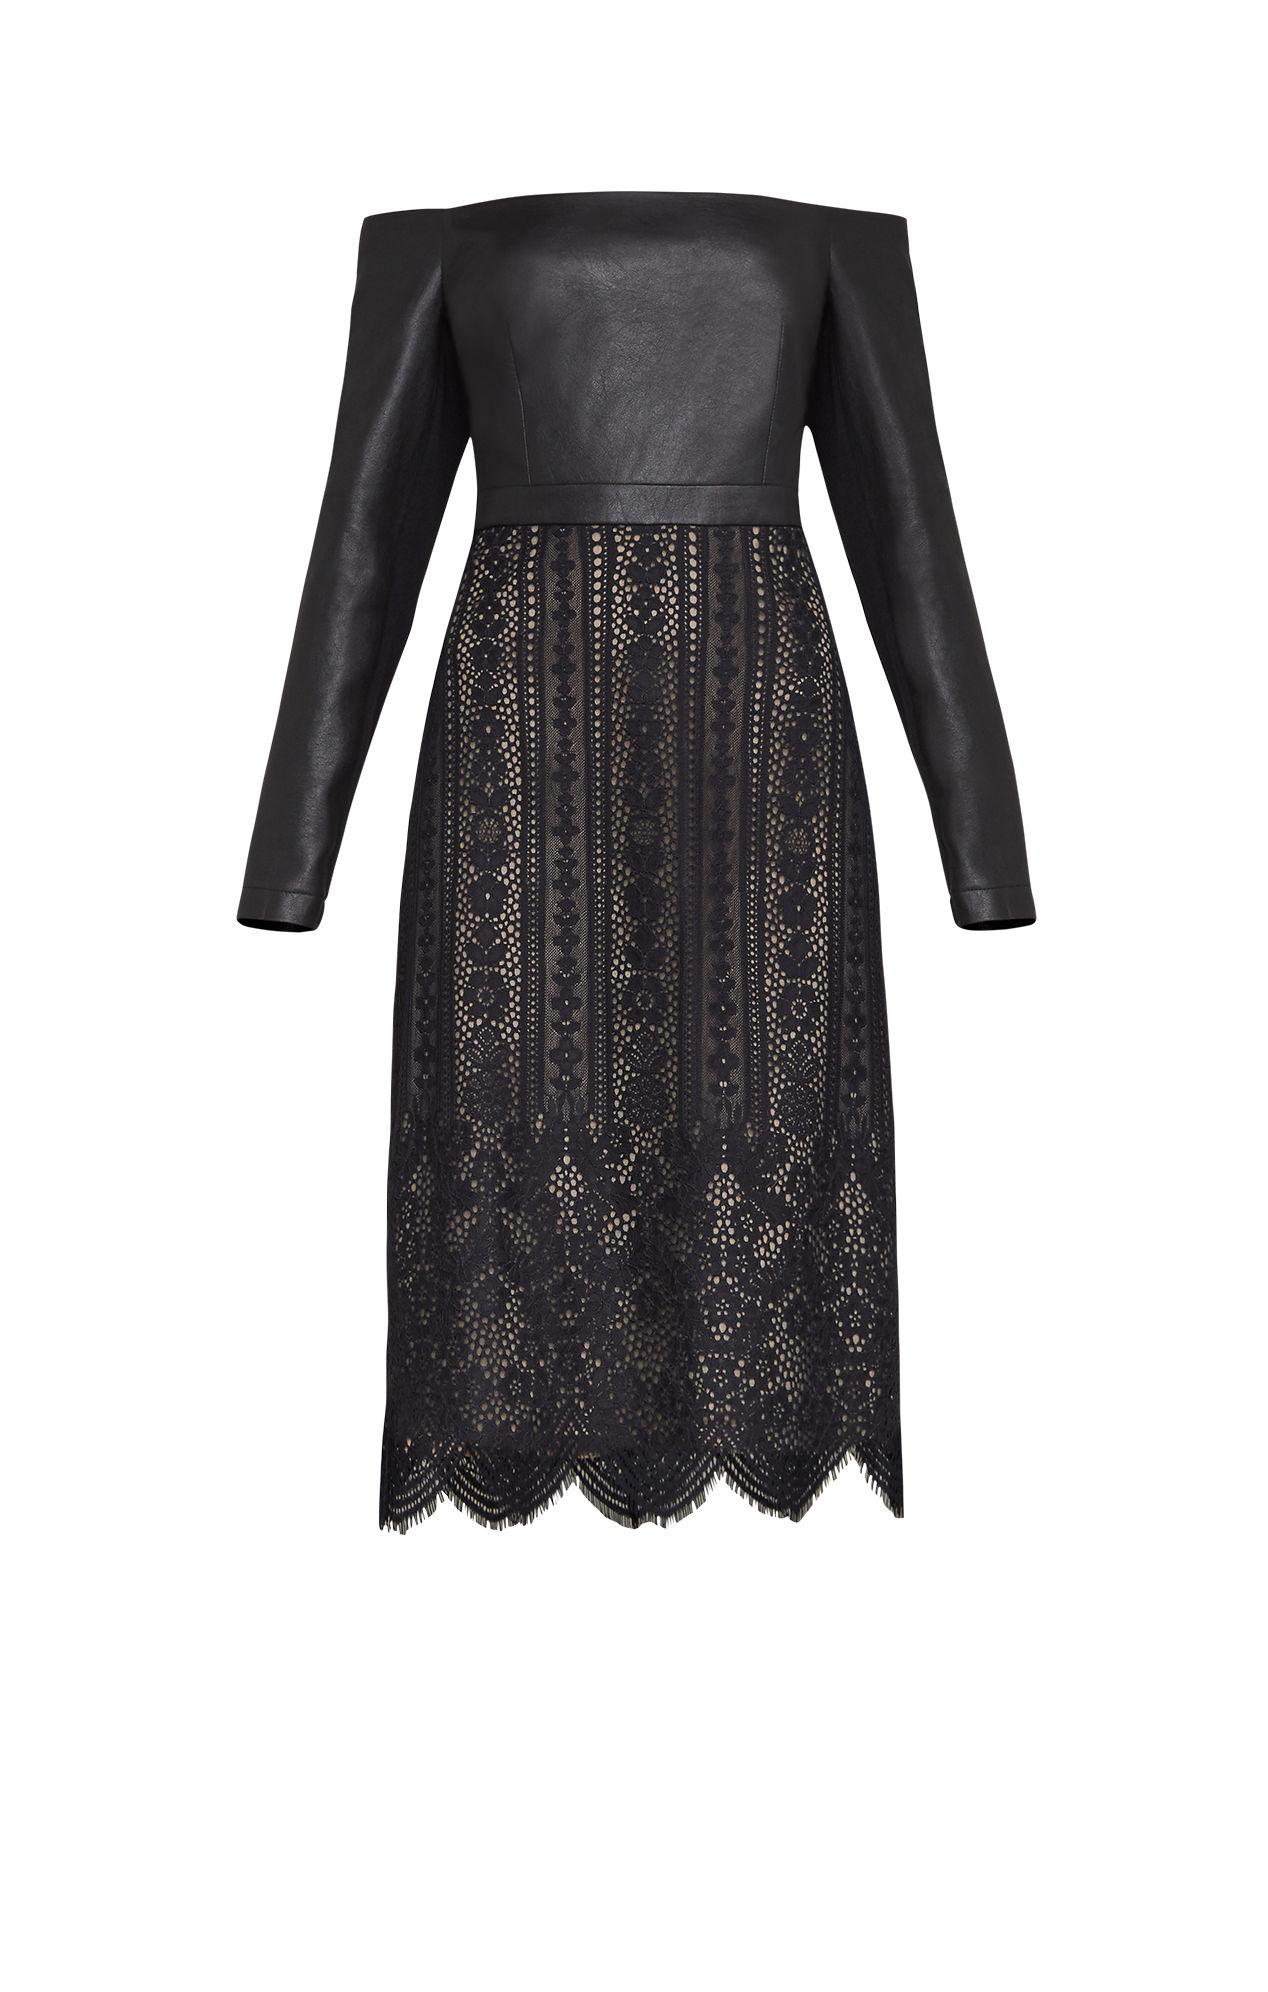 b0a1616c0f16 Gallery. Previously sold at: BCBGMAXAZRIA · Women's Black Lace Cocktail  Dresses